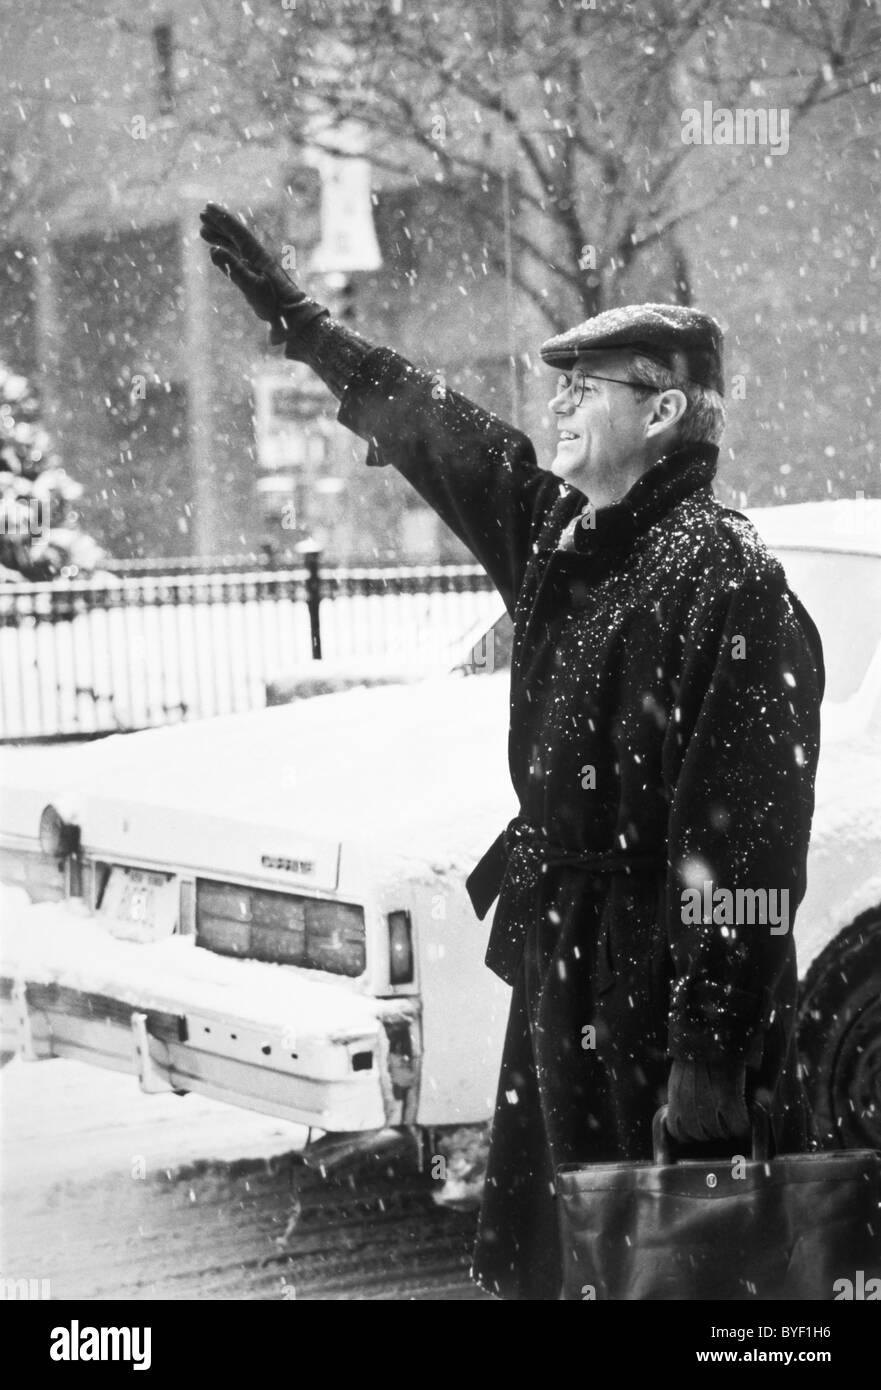 Businessman Hailing Cab in Snowstorm, NYC - Stock Image